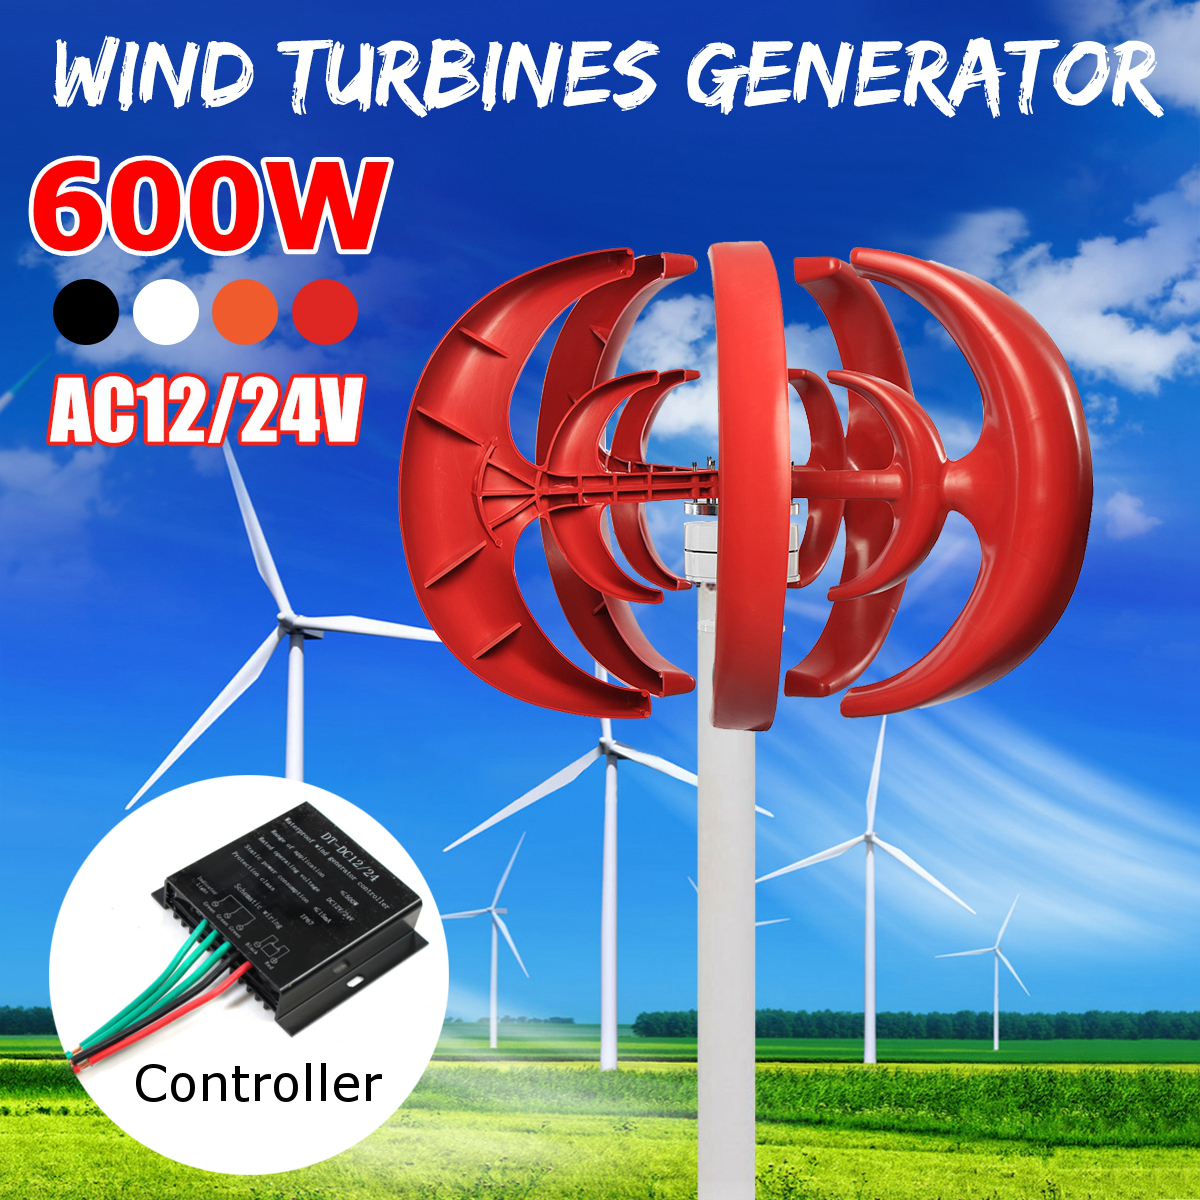 Wind Turbine Max 600W DC 12V 24V Combine With 600W English Wind Generator Controller Home For